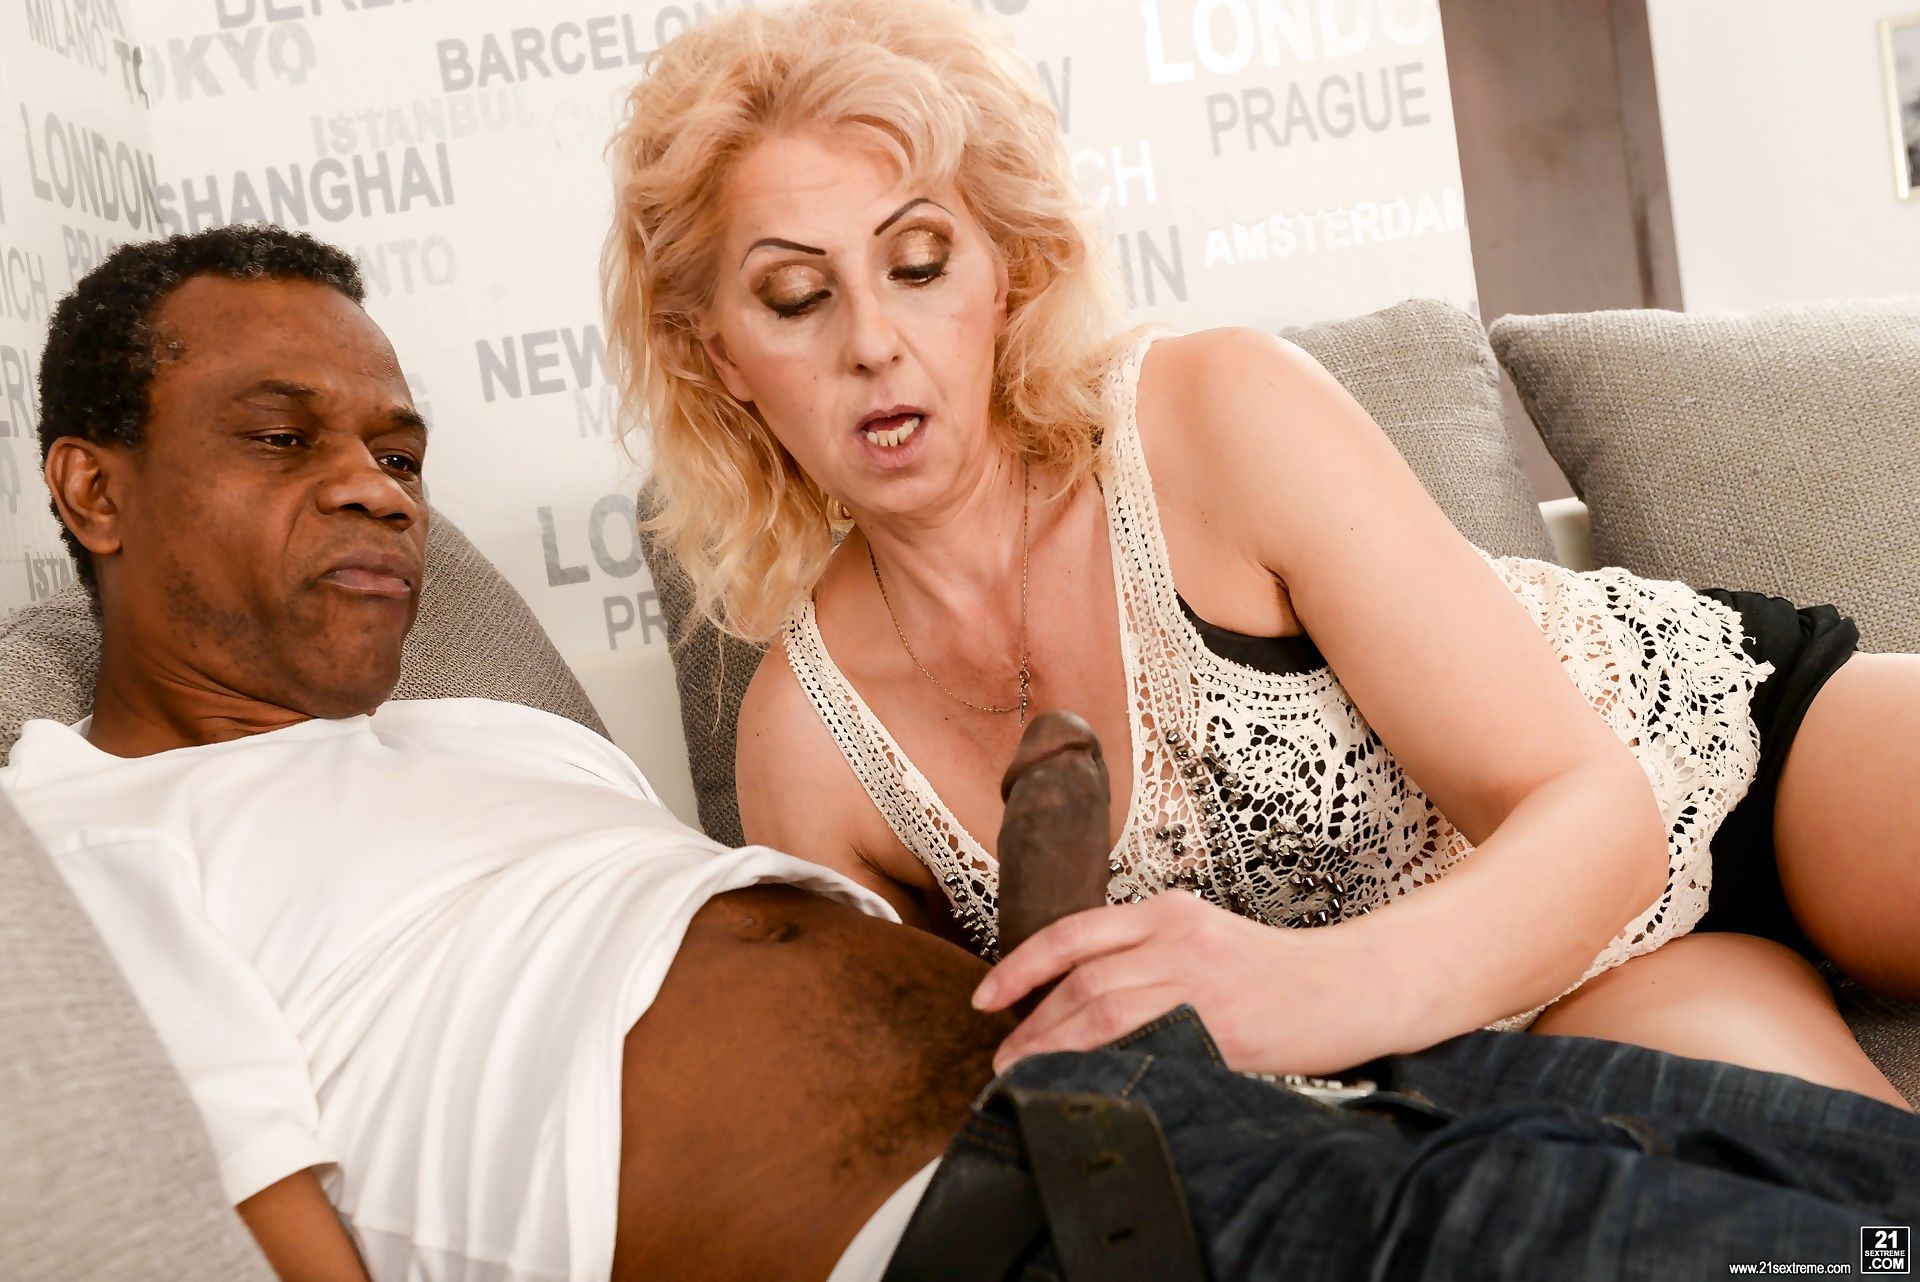 Horny granny ilona loves the taste of hard ebony cock in her mouth. she willingl - part 1559